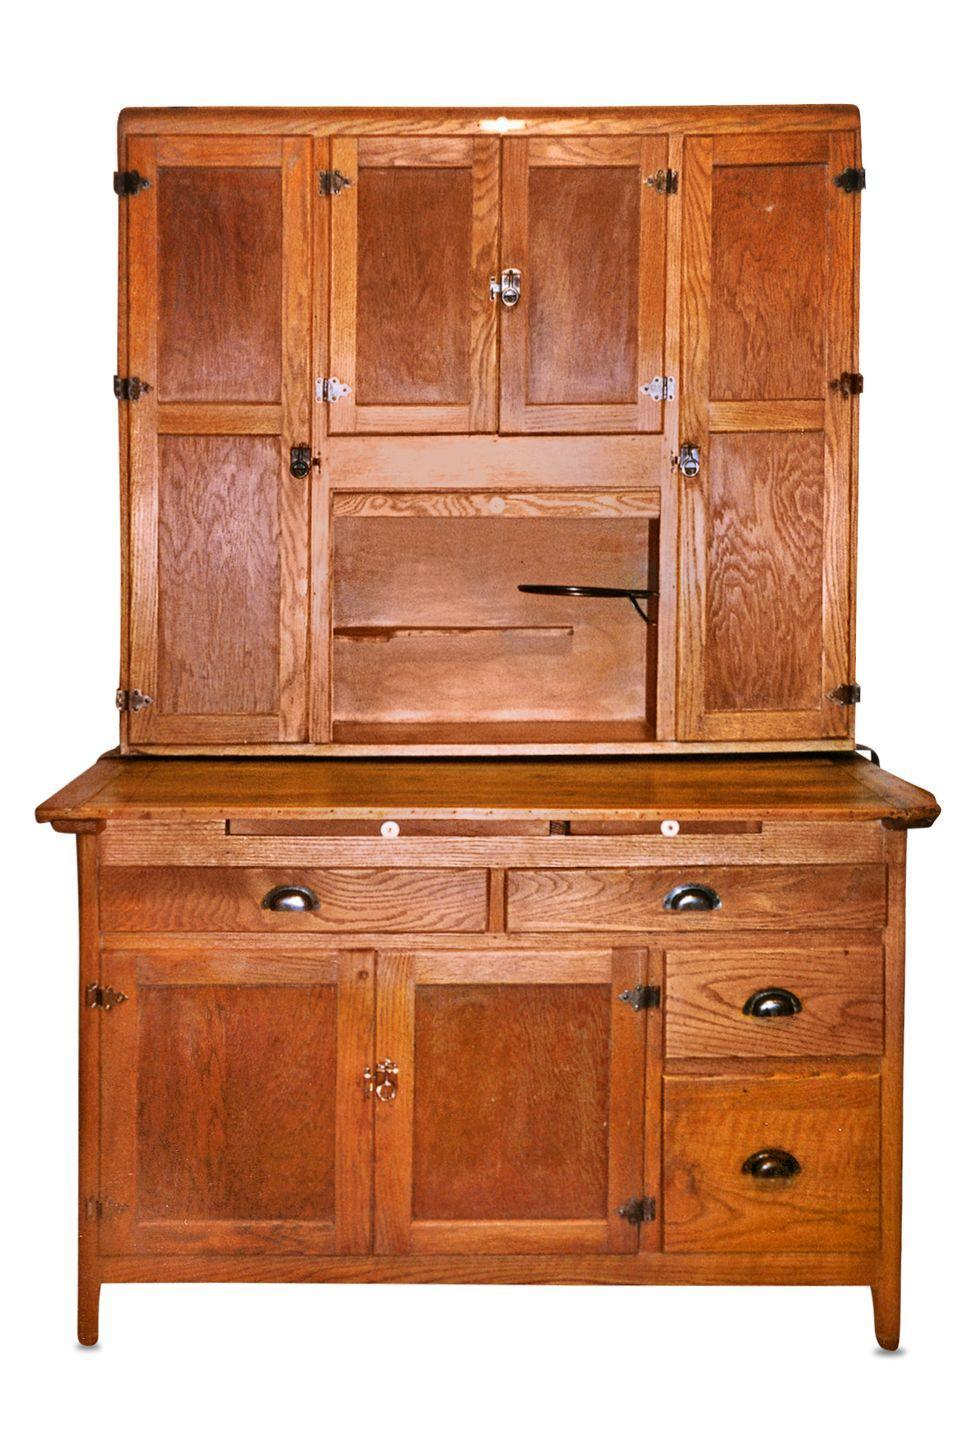 "<p><strong>What it was worth (2008): </strong>$1,000</p><p><strong>What it's worth now:</strong> $1,800</p><p><a href=""https://www.ebay.com/itm/Oak-Hoosier-Cabinet-with-flour-bin/183257071296"" rel=""nofollow noopener"" target=""_blank"" data-ylk=""slk:This gorgeous cabinetry"" class=""link rapid-noclick-resp"">This gorgeous cabinetry</a> would fit perfectly in a <a href=""https://www.countryliving.com/home-design/house-tours/g22854868/idaho-farmhouse-house-tour/"" rel=""nofollow noopener"" target=""_blank"" data-ylk=""slk:cute country cottage."" class=""link rapid-noclick-resp"">cute country cottage.</a></p>"